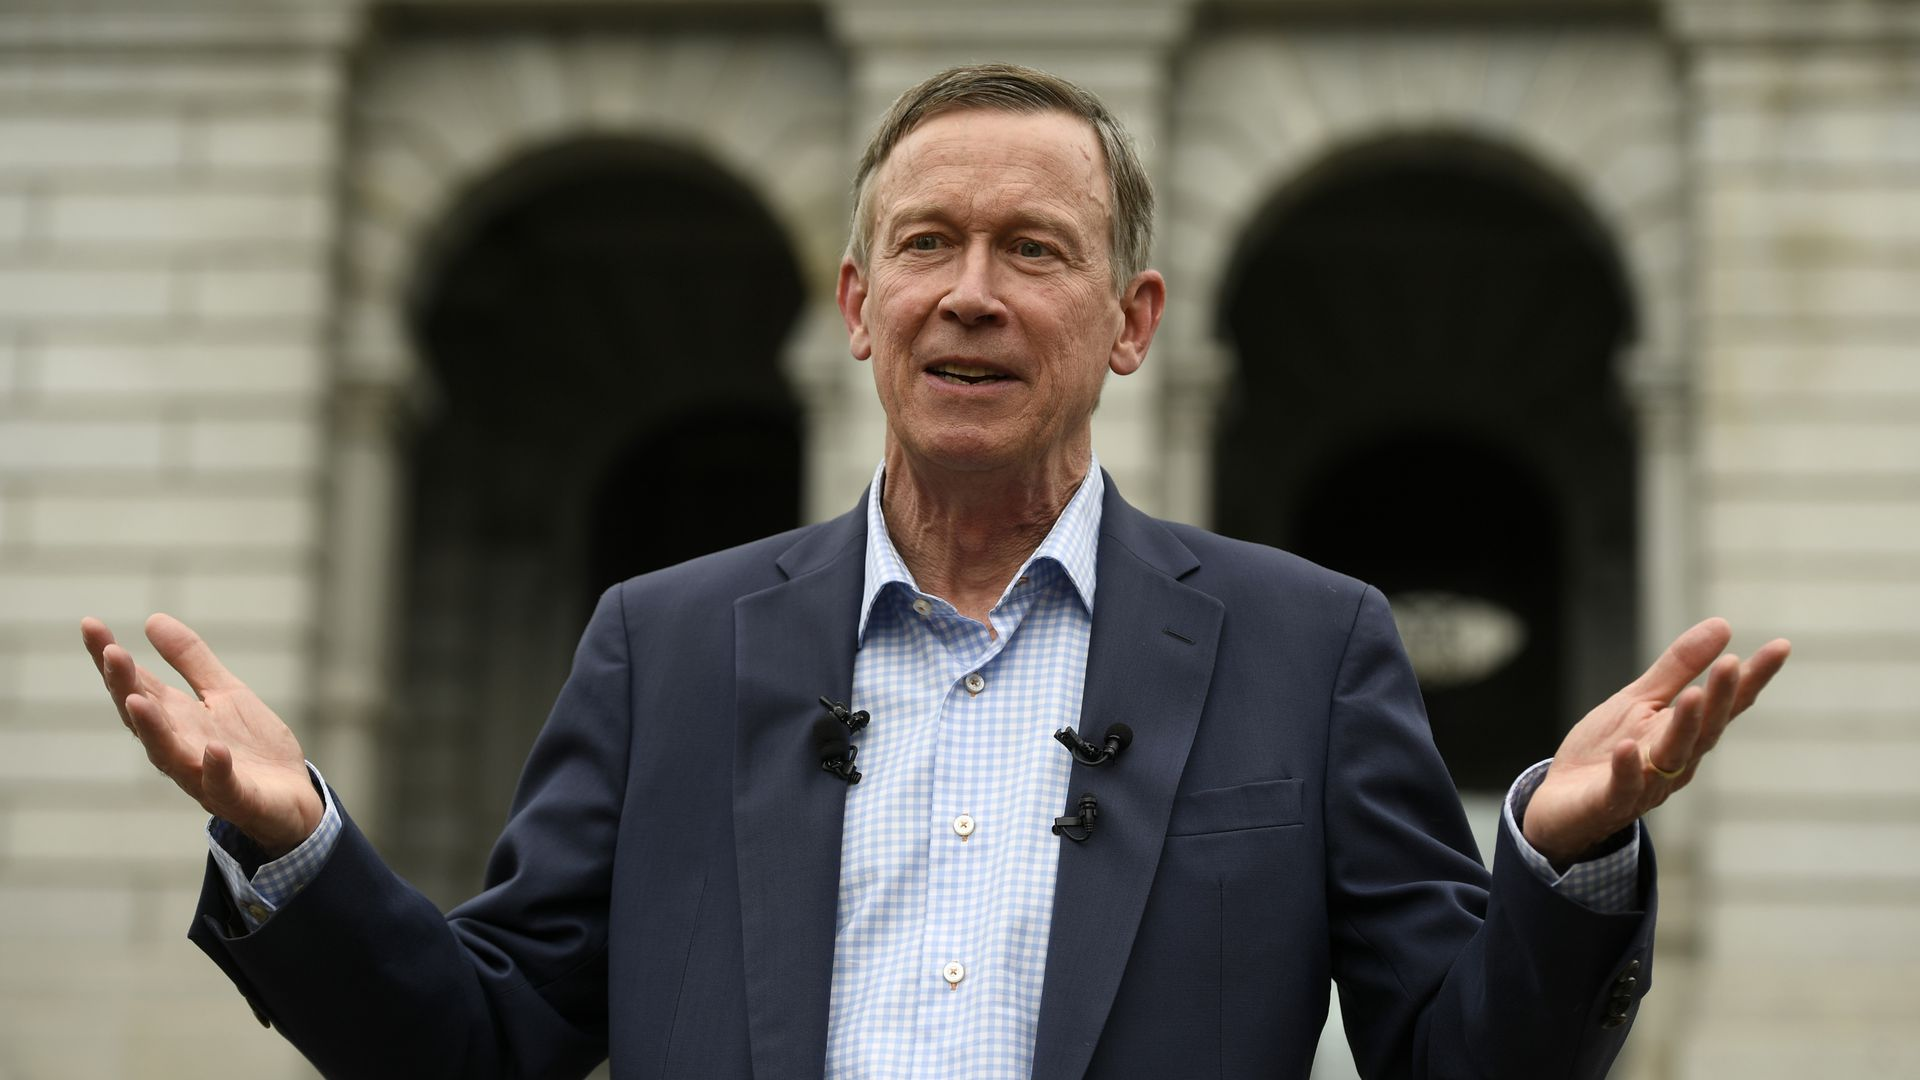 Former Colorado Governor and Ex-2020 candidate John Hickenlooper